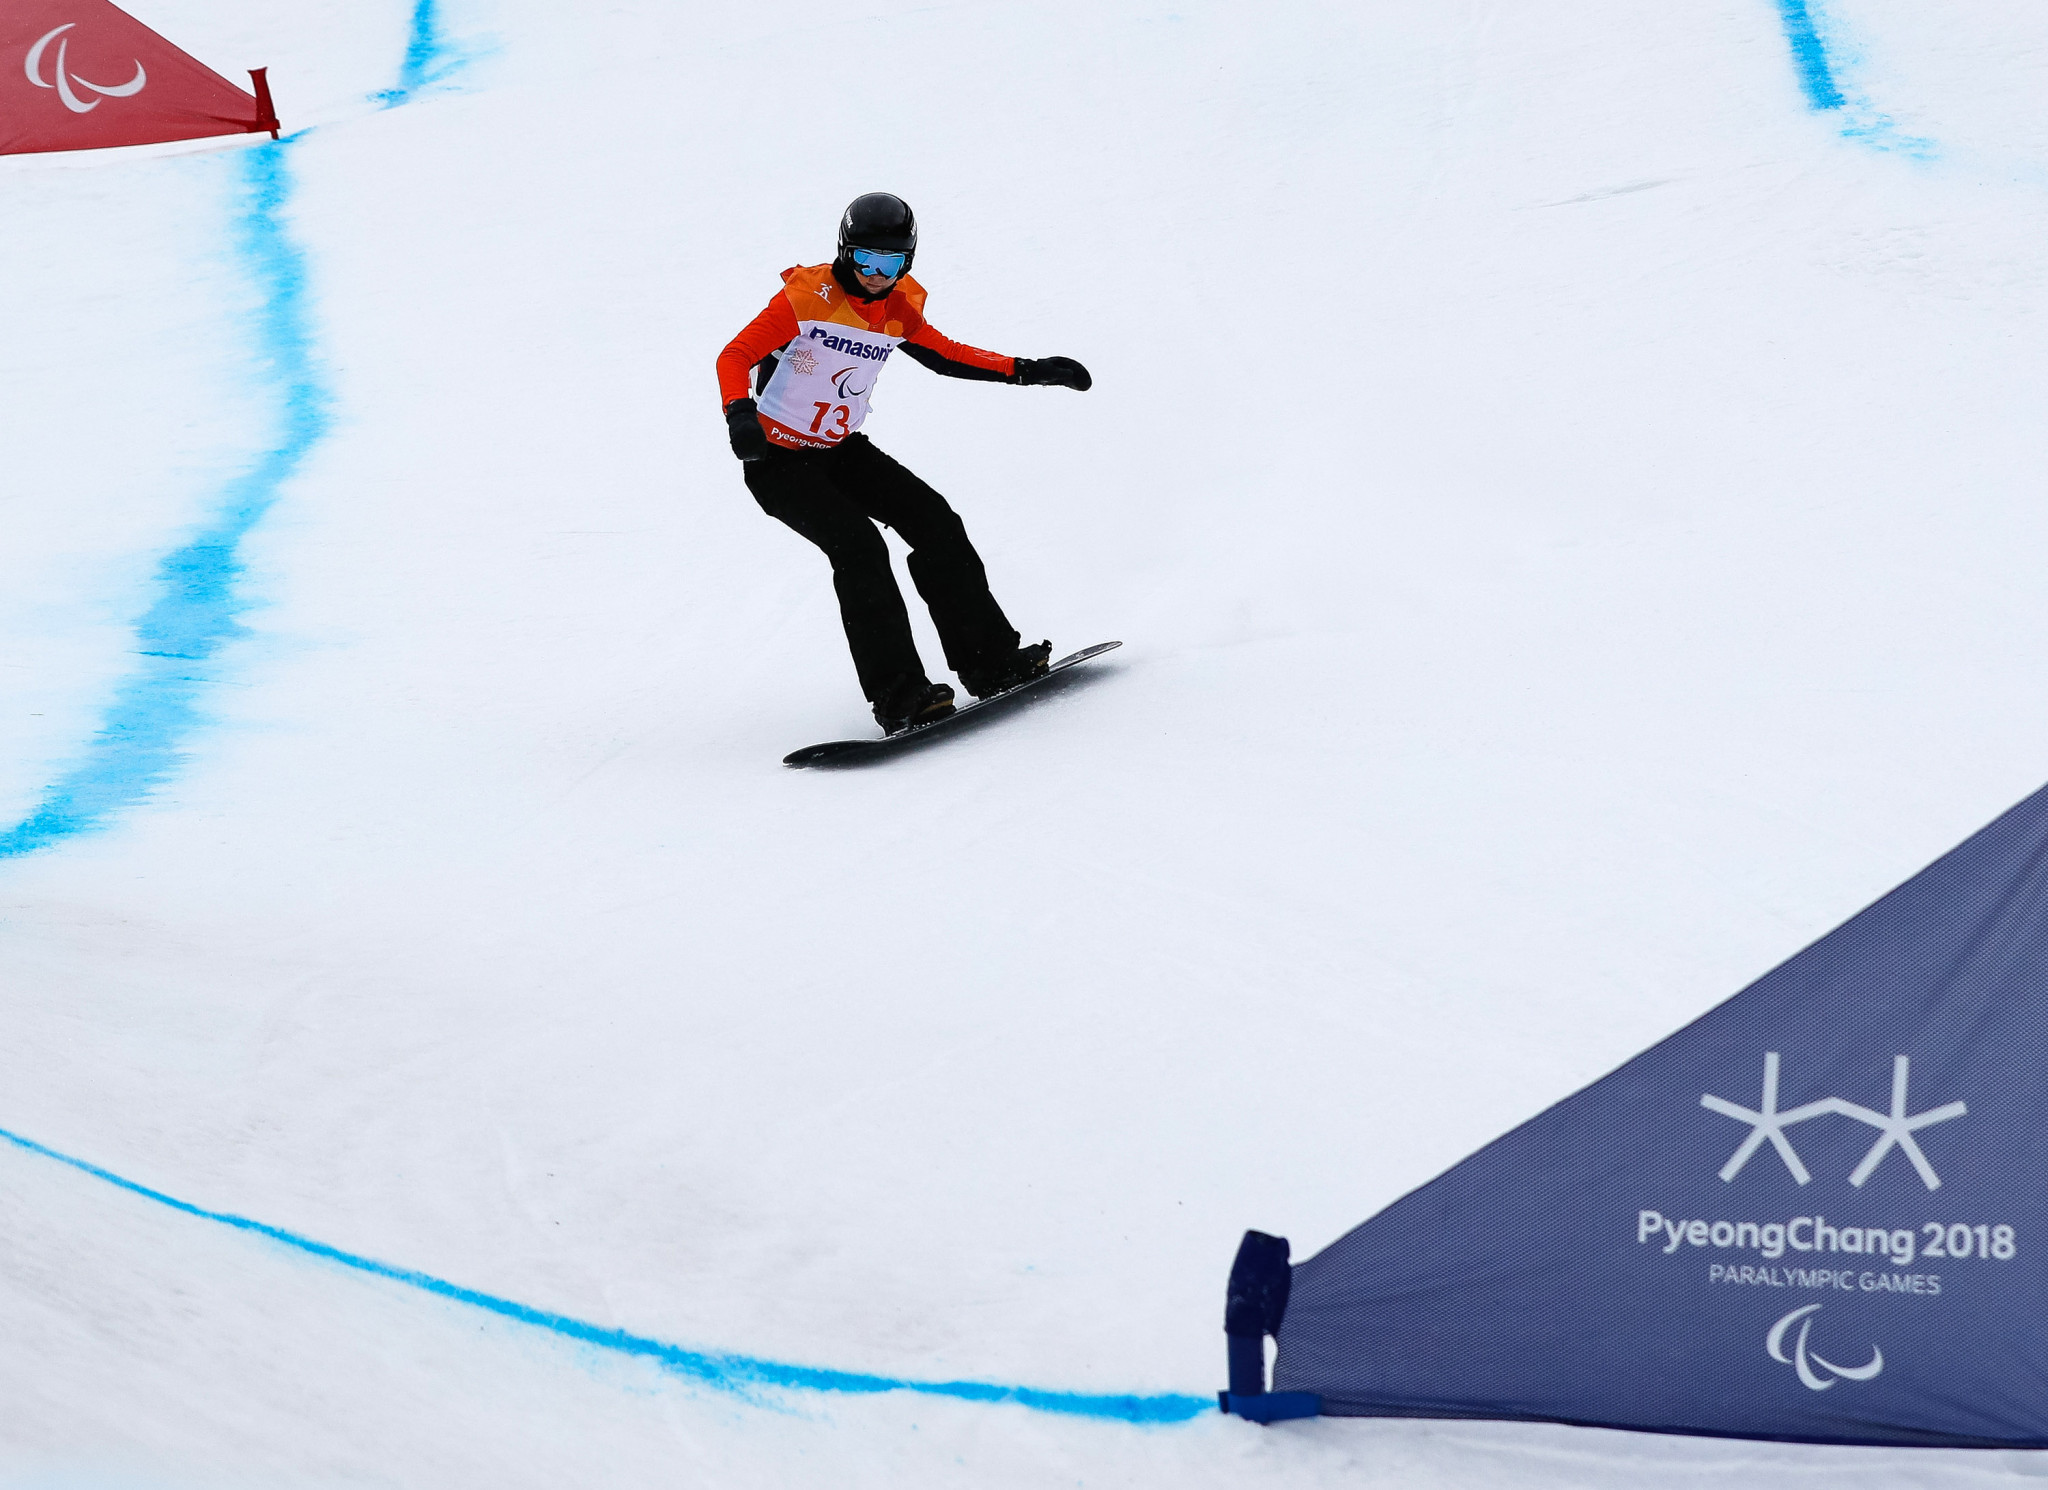 Lisa Bunschoten of The Netherlands continued her impressive form with victory in the women's SB-LL2 event ©Getty Images